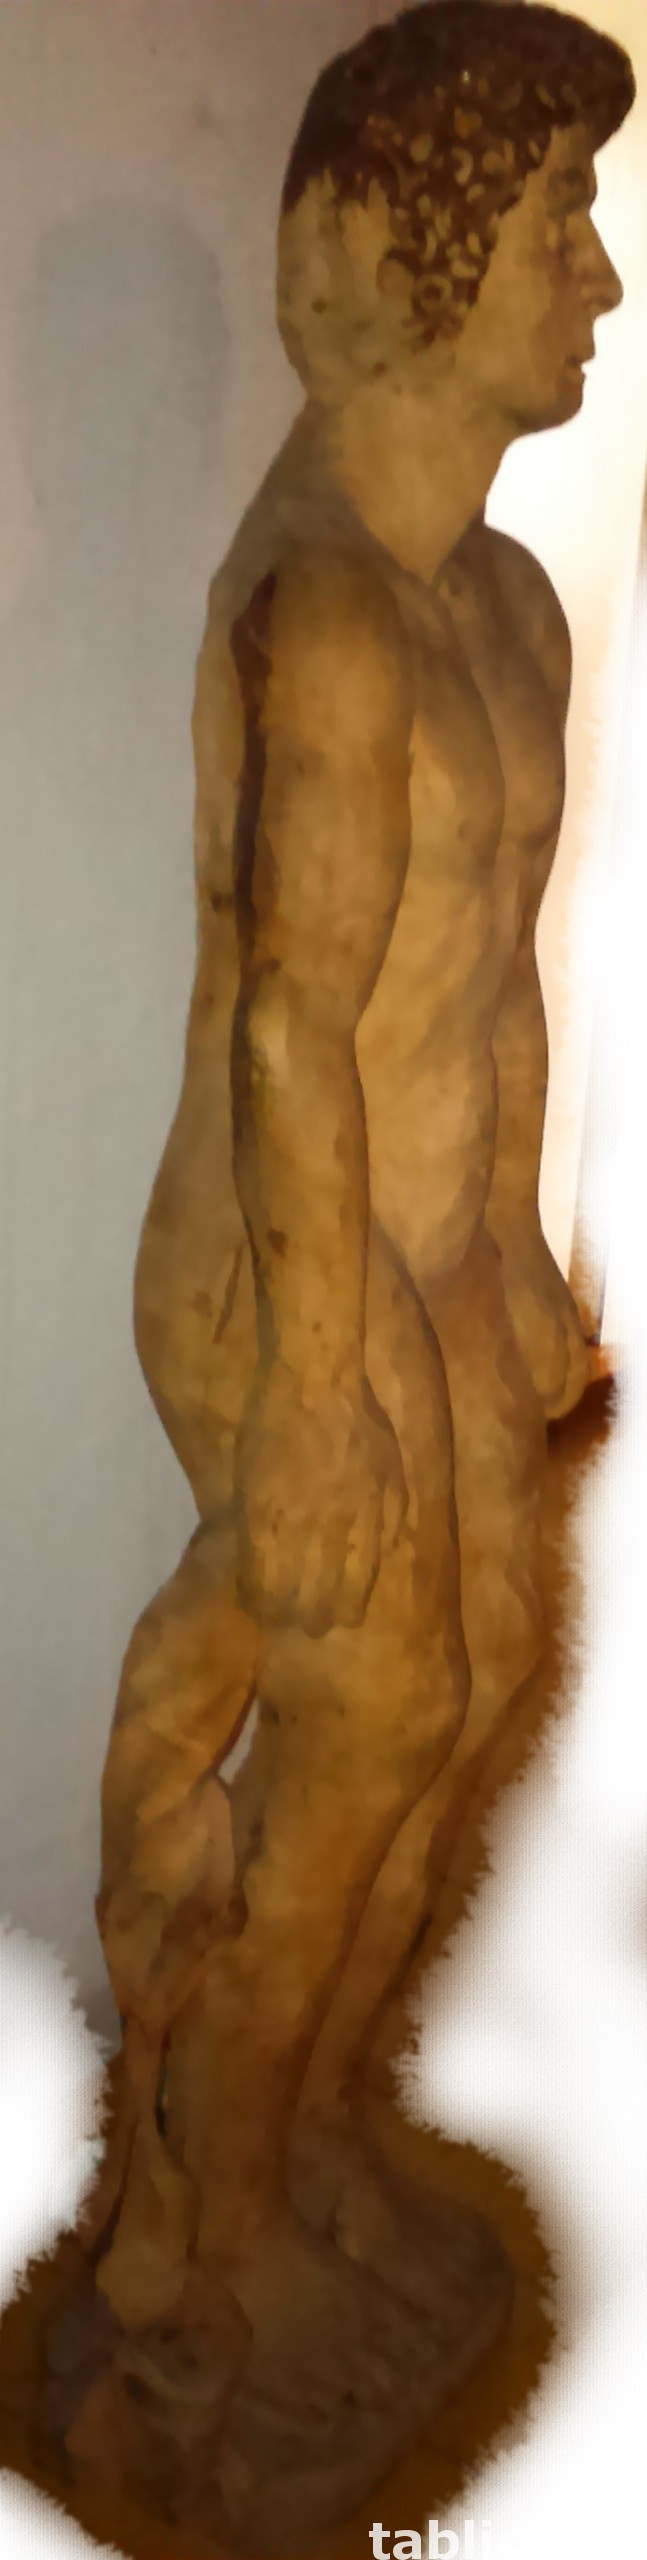 For Sale: Sculpture: The Looking Man - Solid Wood !!! 4